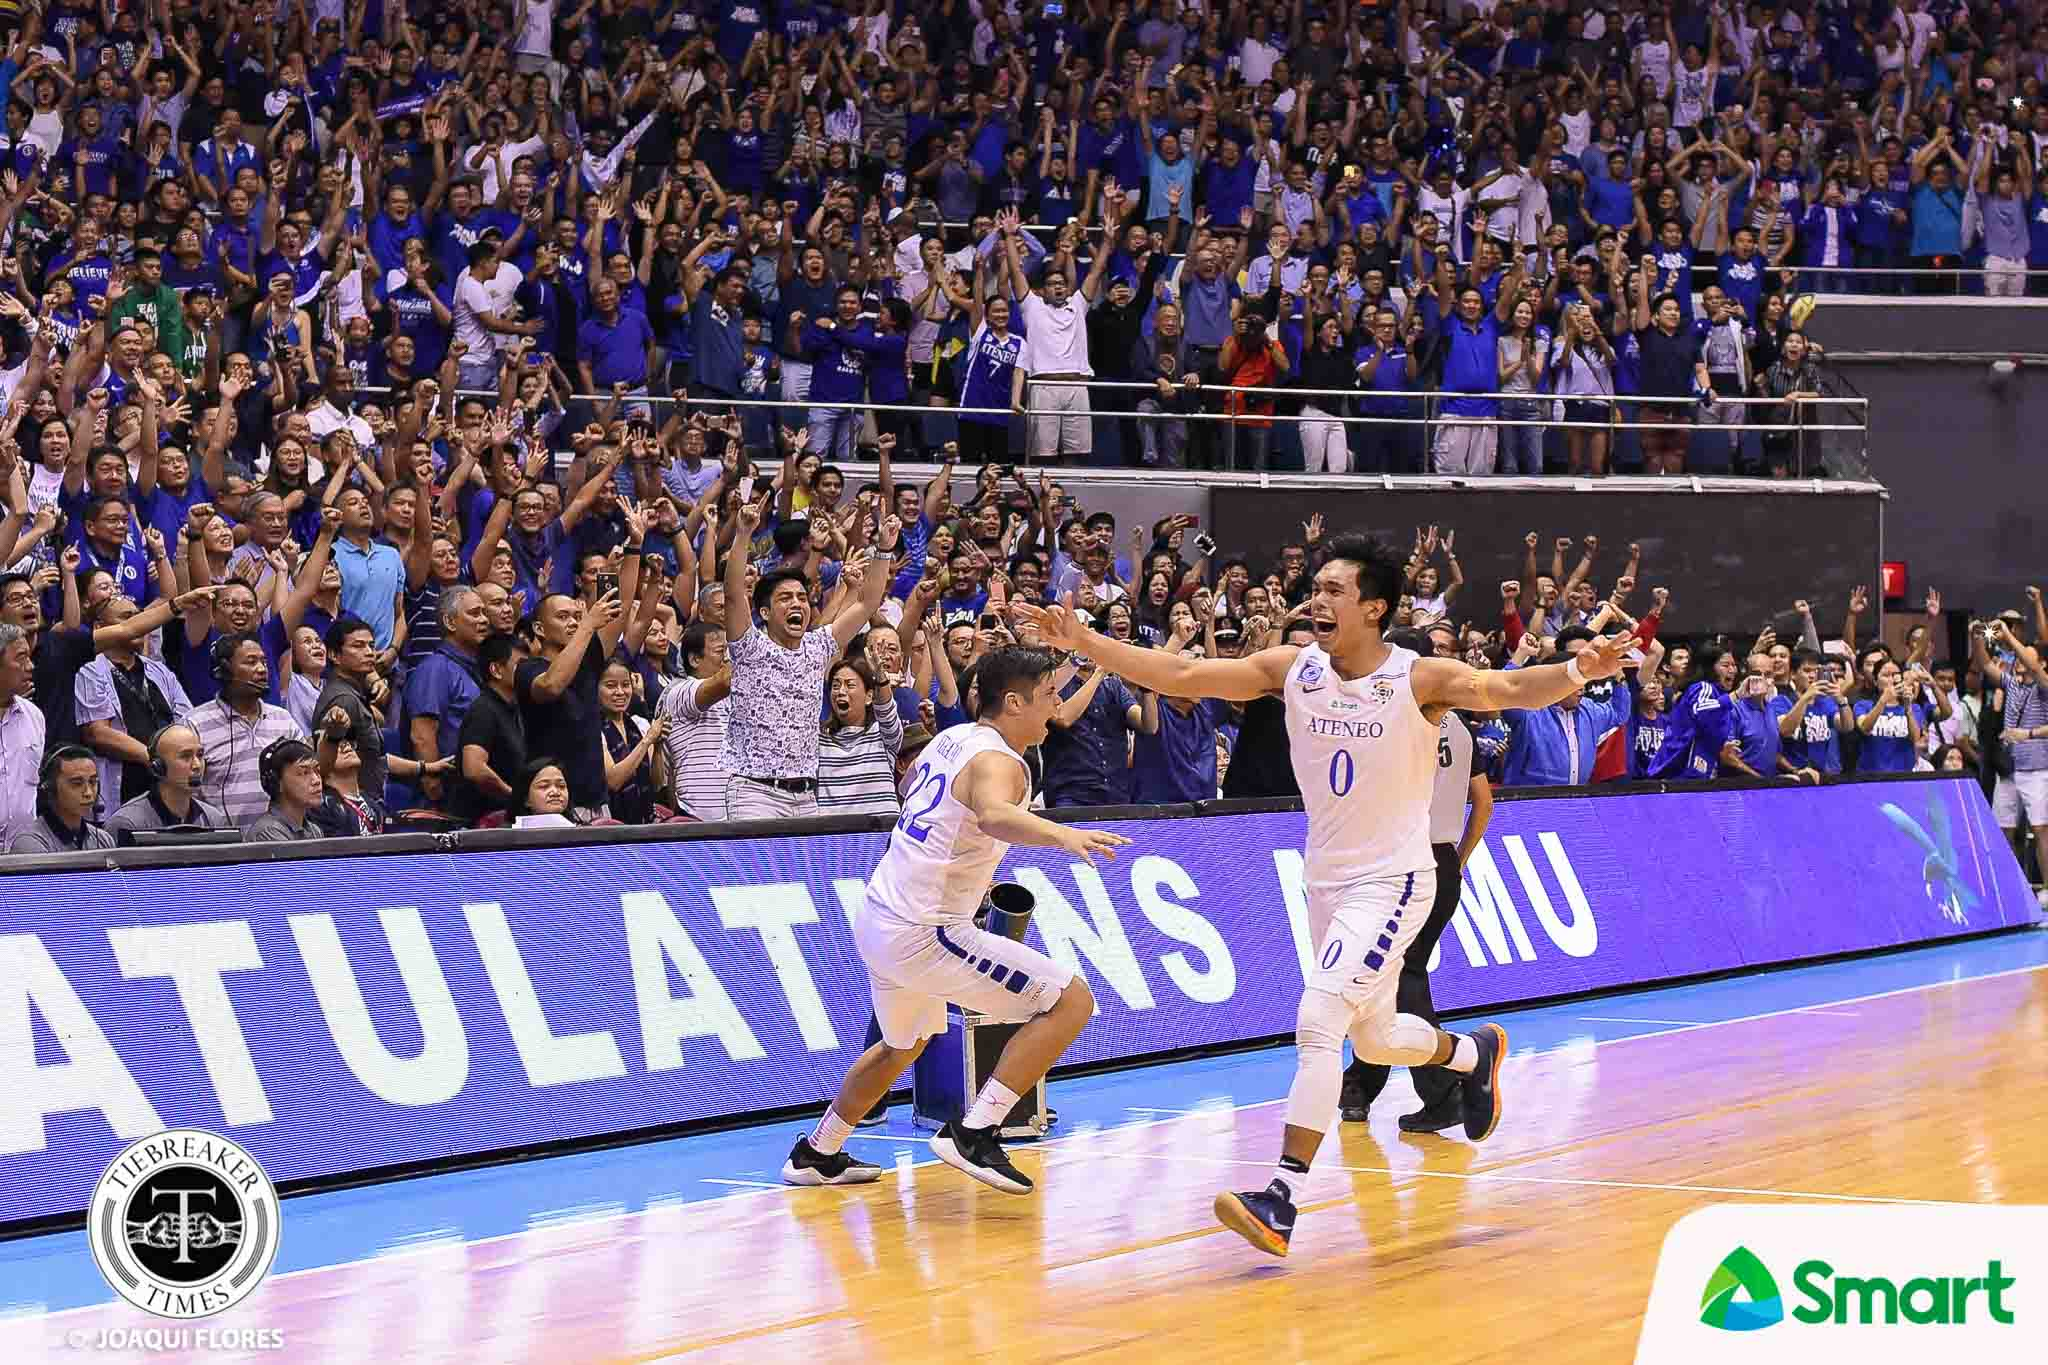 Tiebreaker Times Thirdy Ravena shares Finals MVP crown to teammates ADMU Basketball News UAAP  UAAP Season 80 Men's Basketball UAAP Season 80 Thirdy Ravena Ateneo Men' Basketball